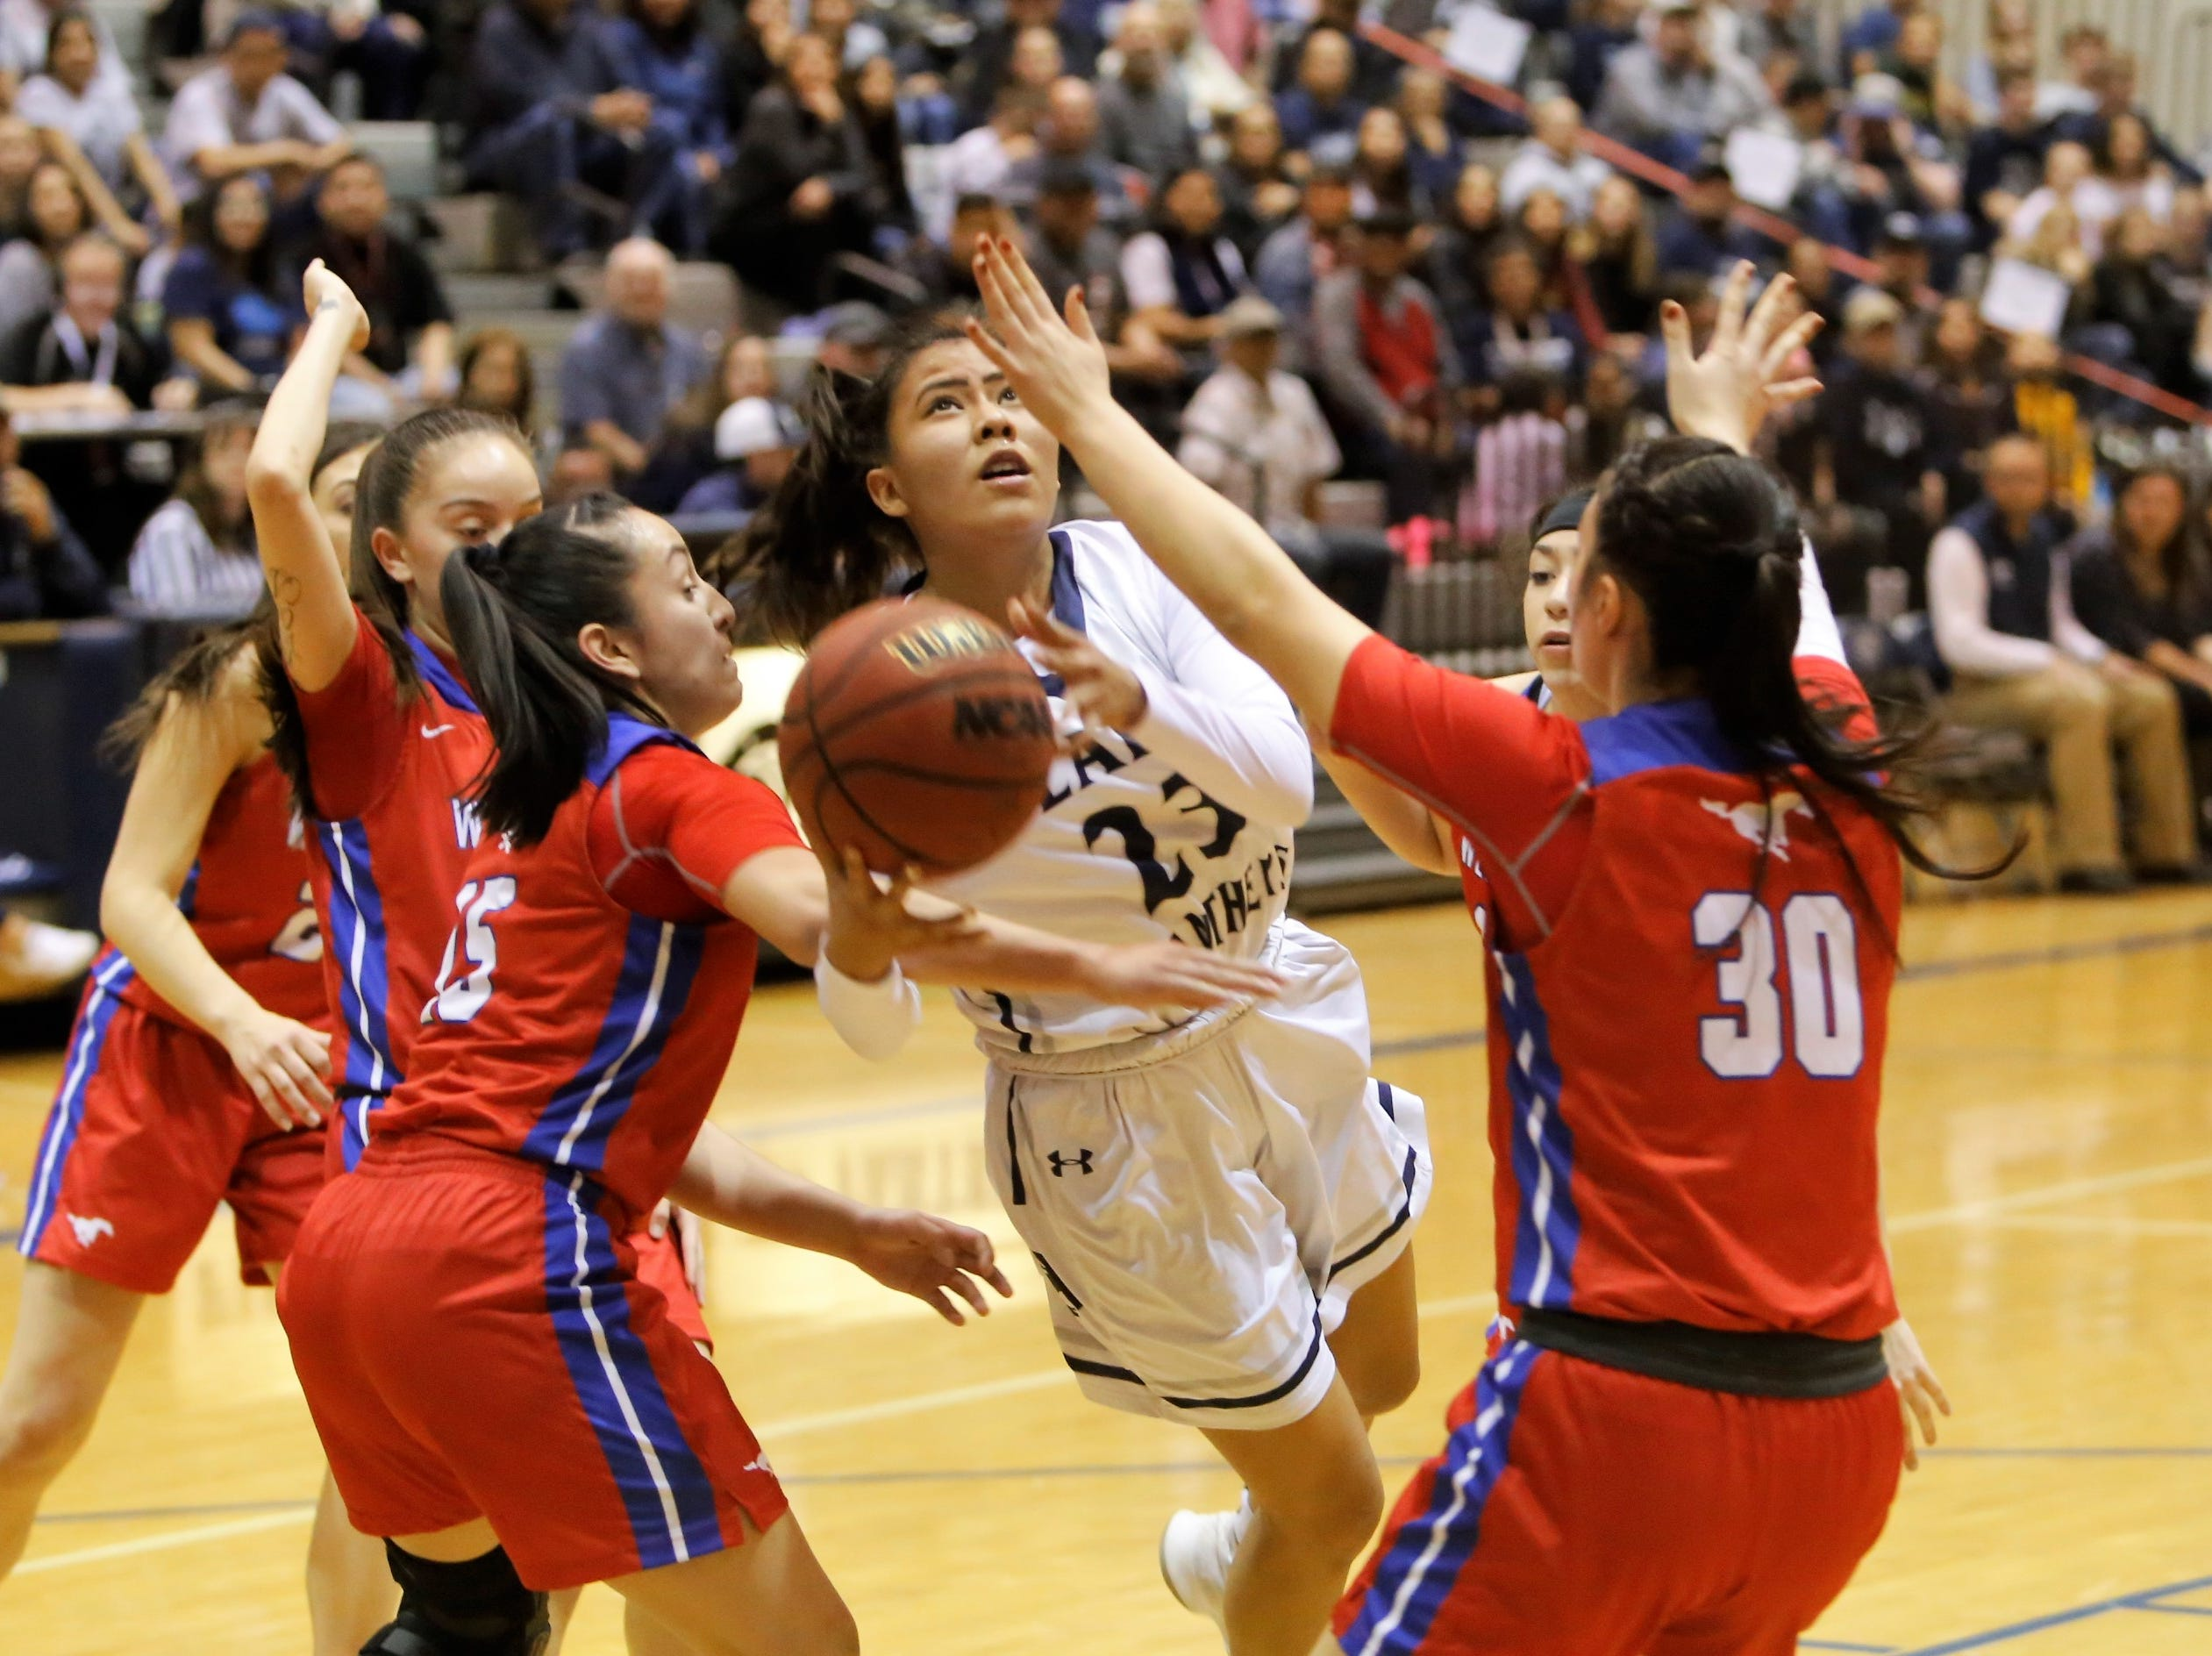 Piedra Vista's Hallie Blackie attacks the basket and gets fouled by West Mesa's Esperanza Varoz (15) during Saturday's District 2-5A tournament championship game at Jerry A. Conner Fieldhouse in Farmington.